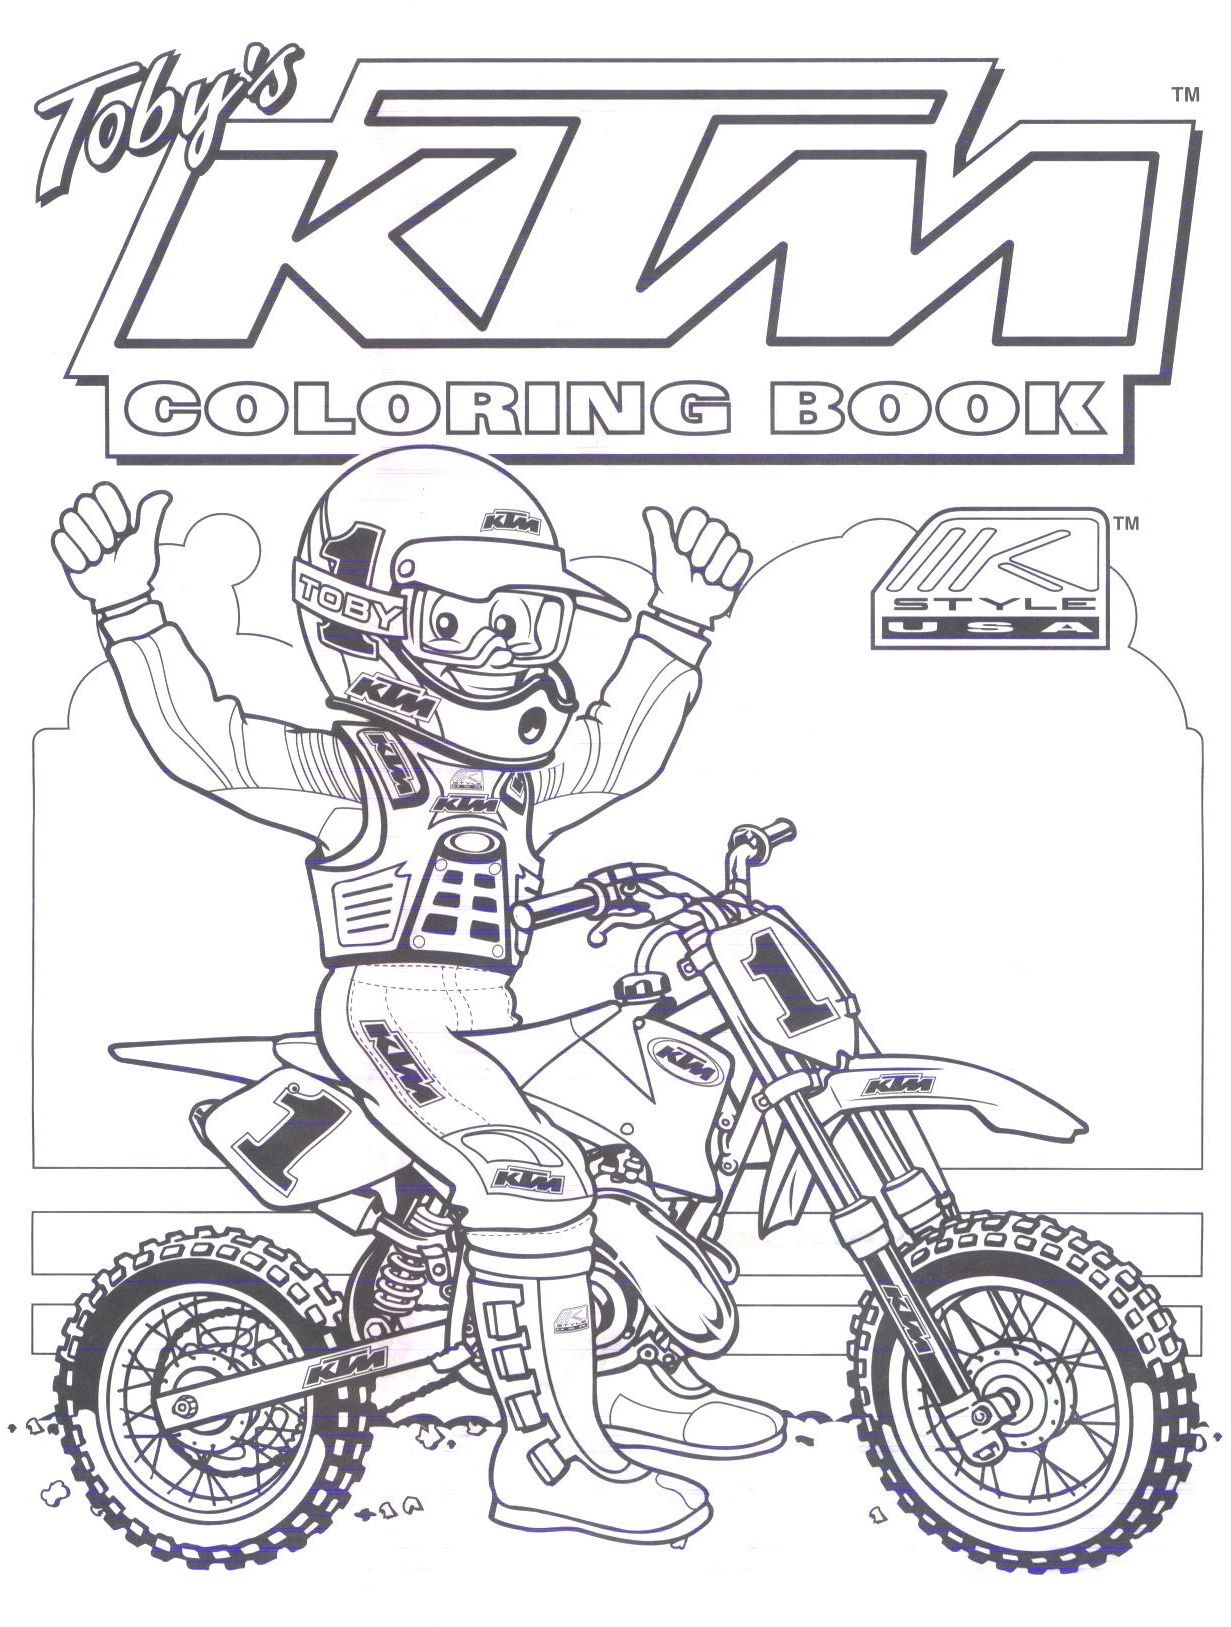 Ktm Dirt Bike Coloring Pages … | Dirt Bike Party bei Motorrad Malvorlage